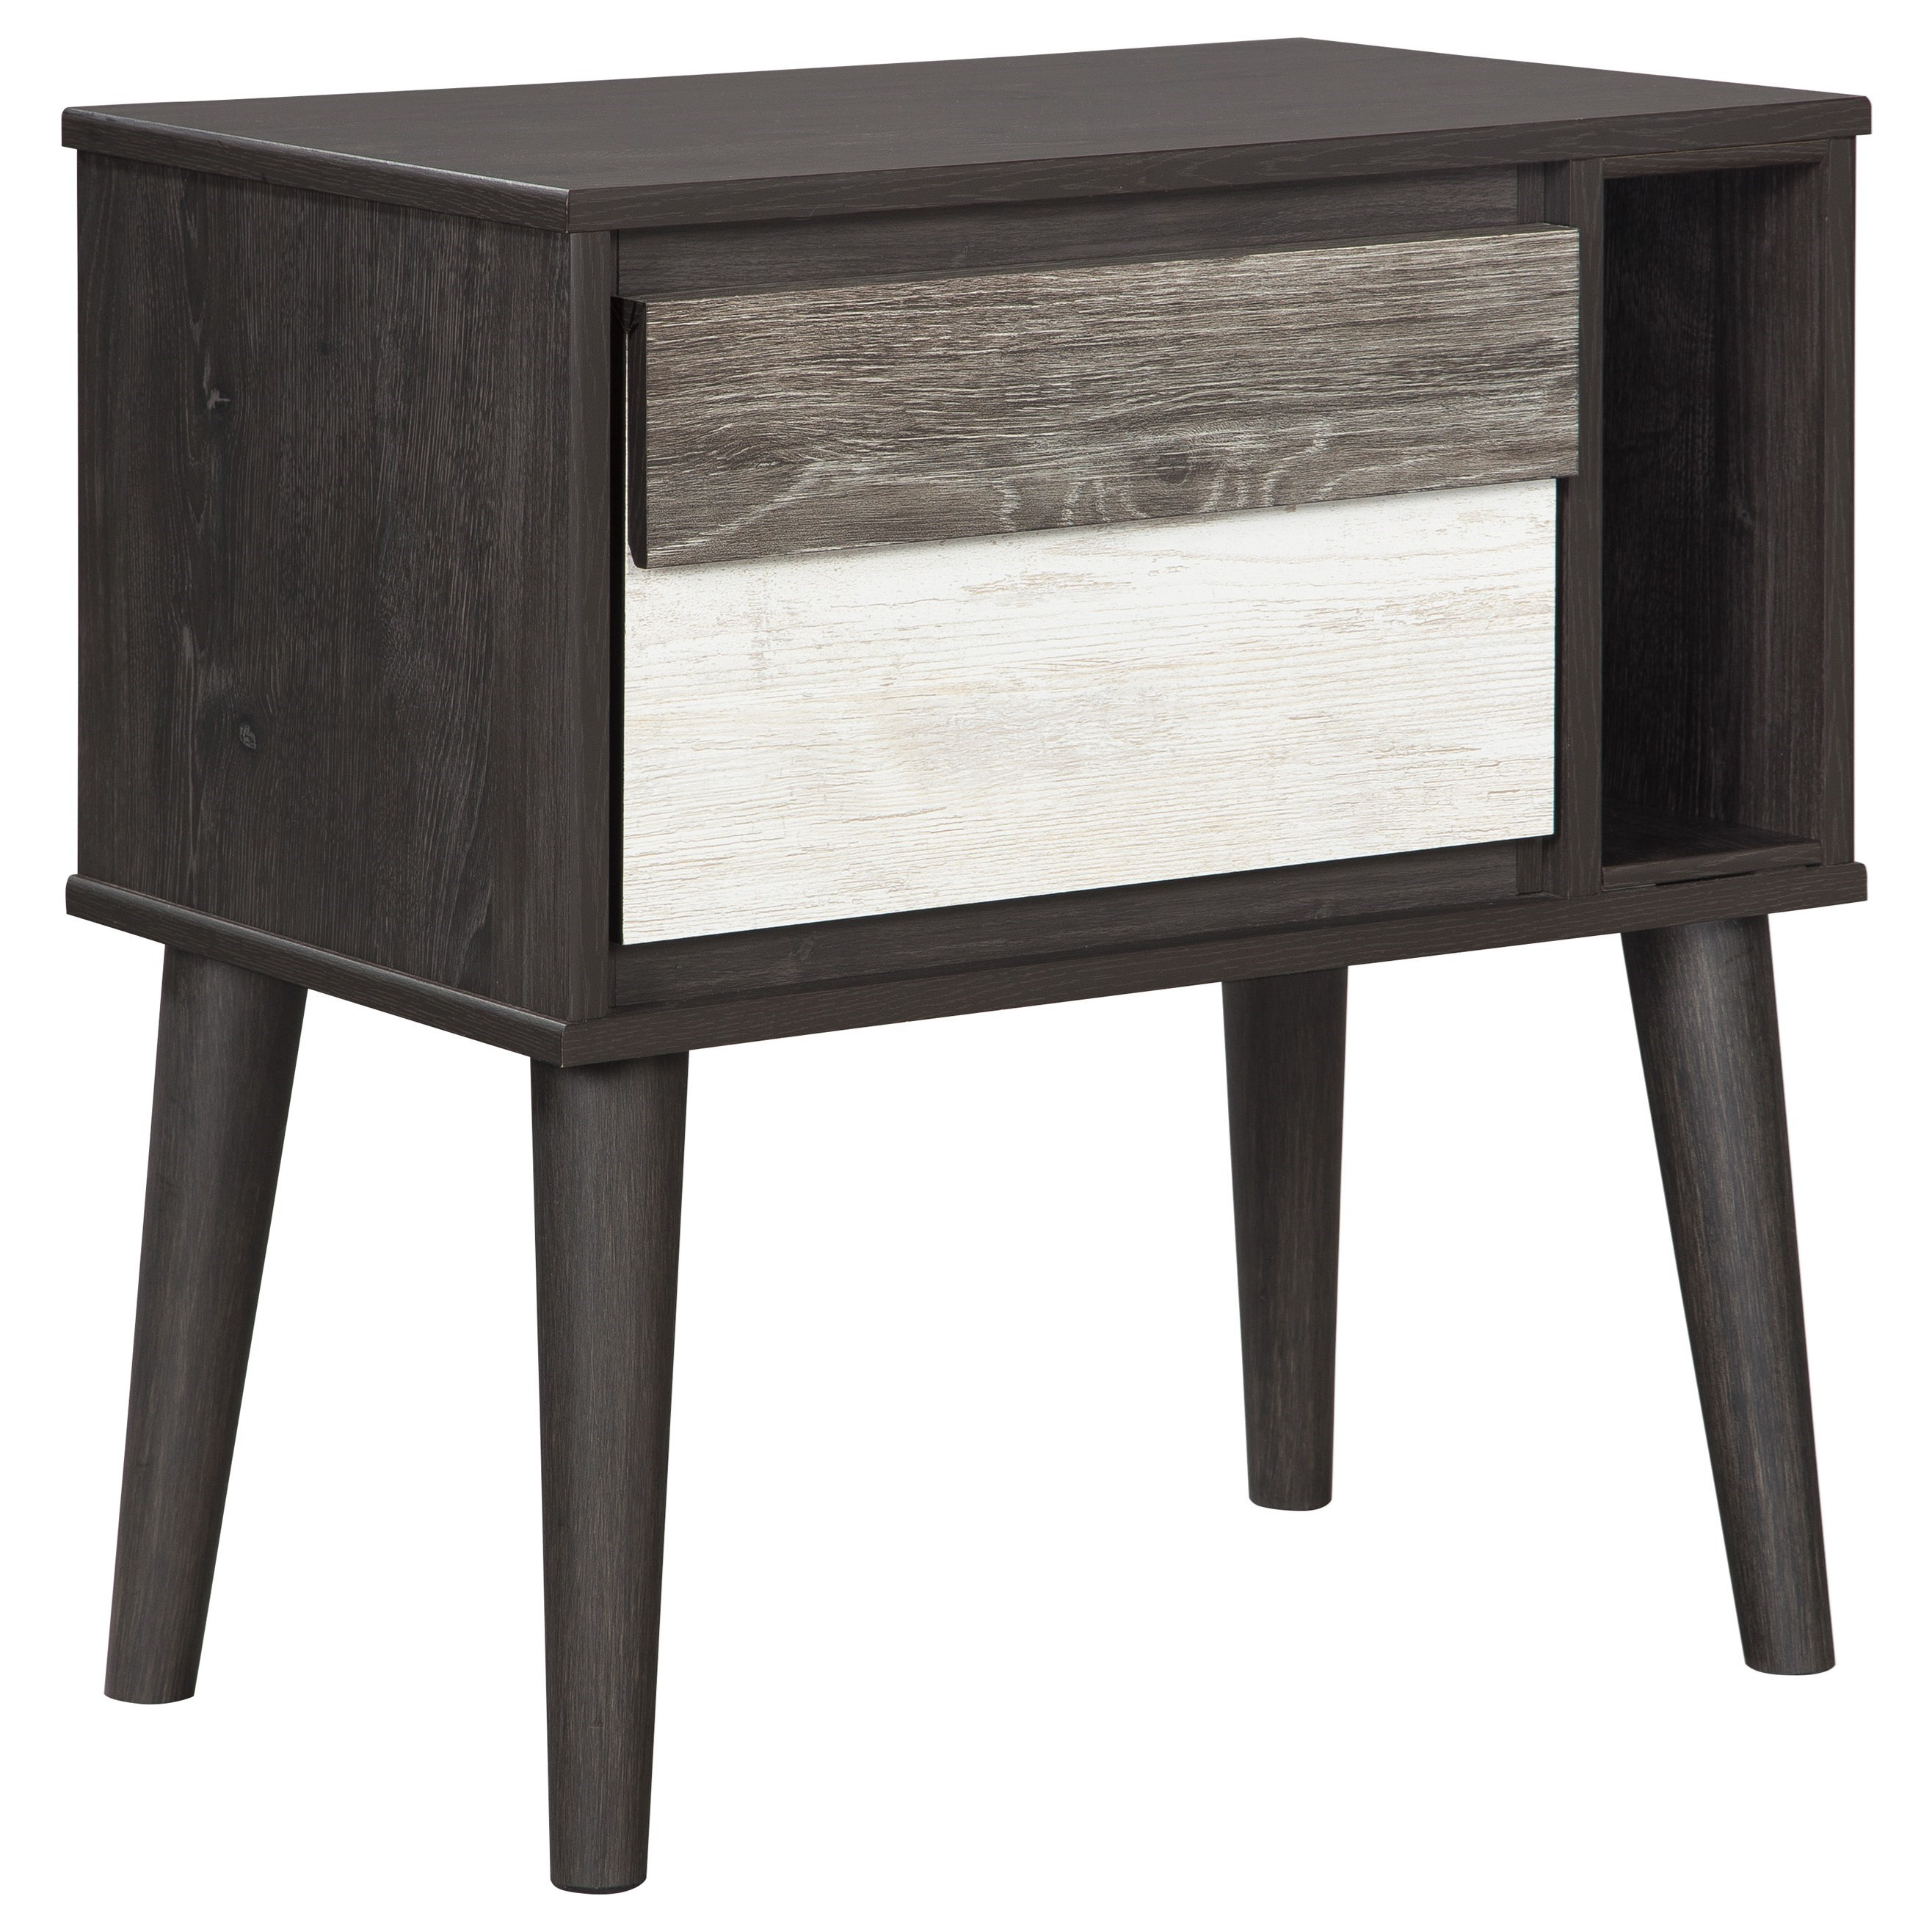 Signature Design by Ashley Micco One Drawer Night Stand - Item Number: B300-91